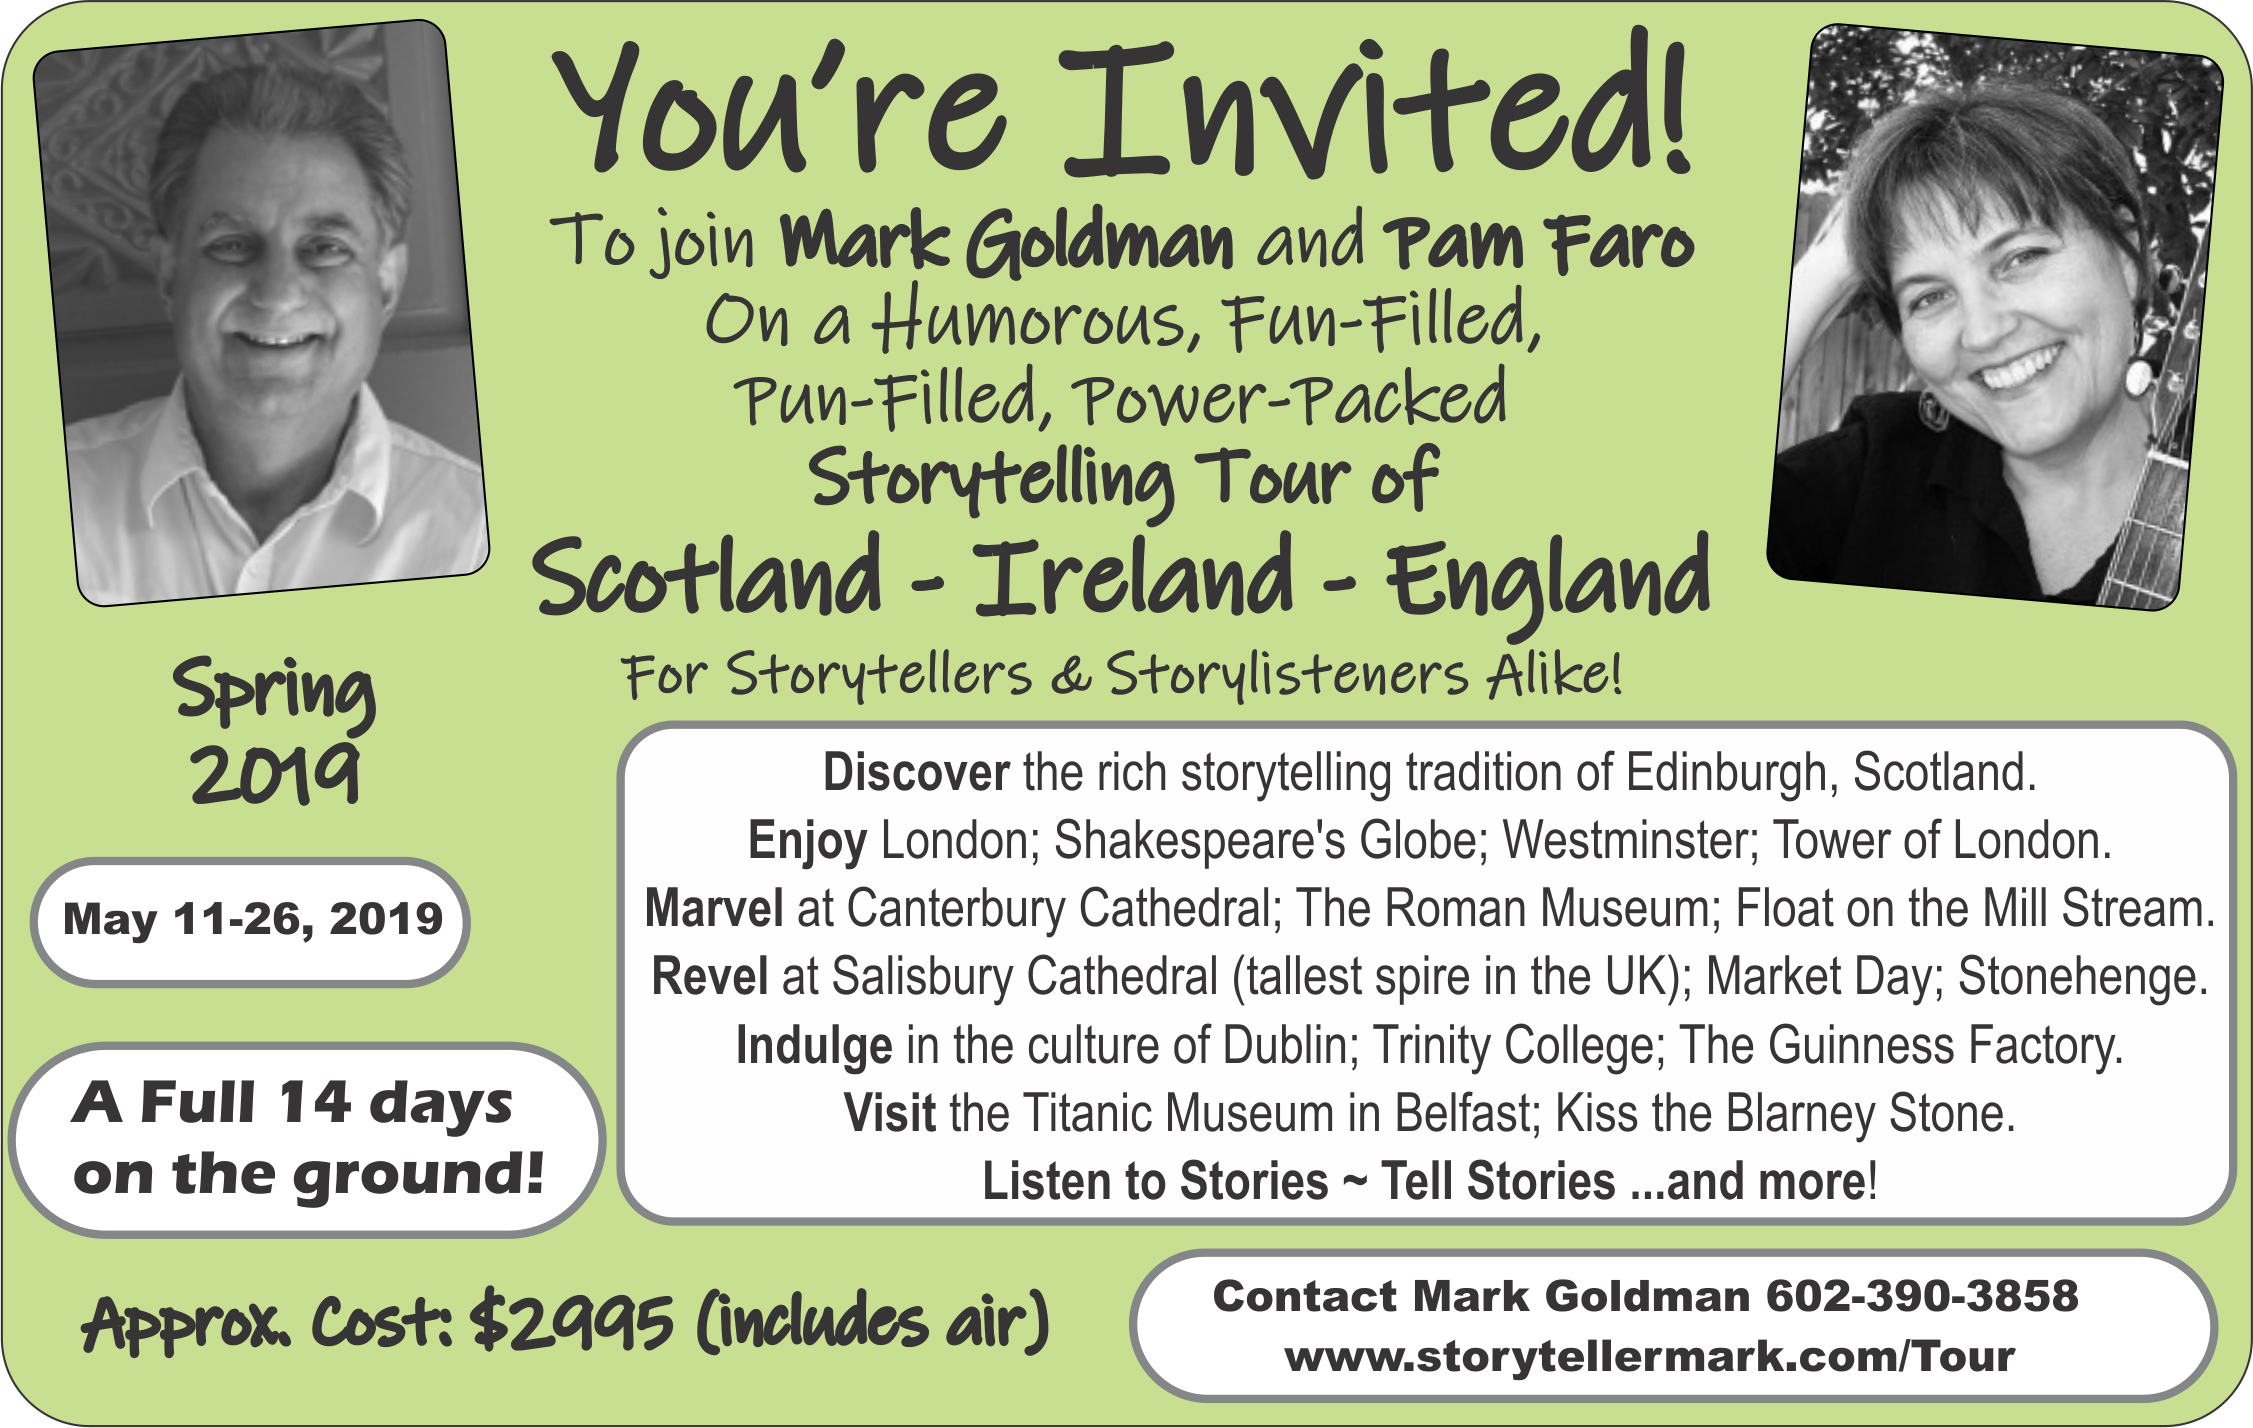 8a64dab18b Pam and I are planning the 2019 Historical Hysterical  Scotland-Ireland-England Storytelling Tour. This year